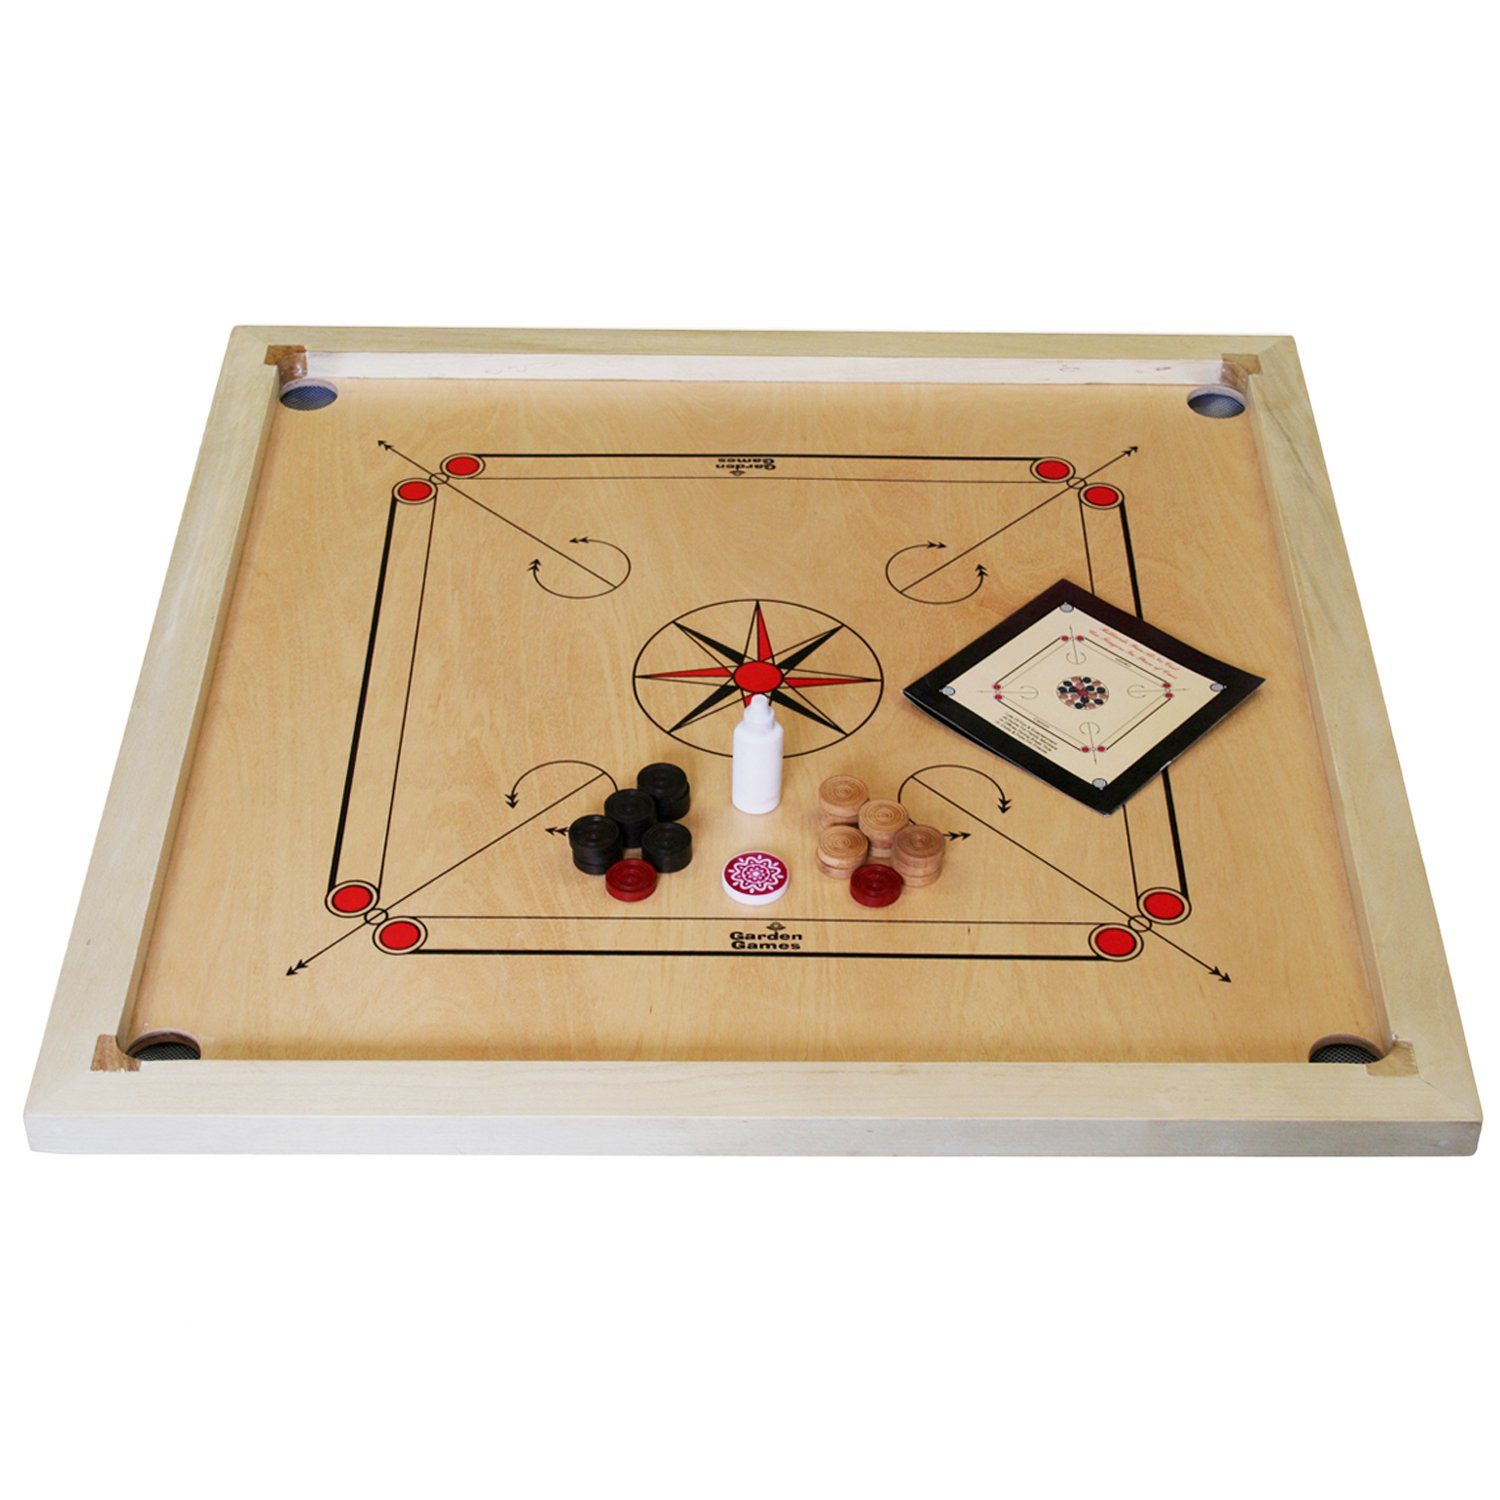 card game set wood handcrafted india full house place to call home box set Garden Games Carrom Board Set Made in India, 33 inch x 33 inch Polished  Mango Plywood Playing Surface with a Solid Mango Frame, Includes Coins, ...